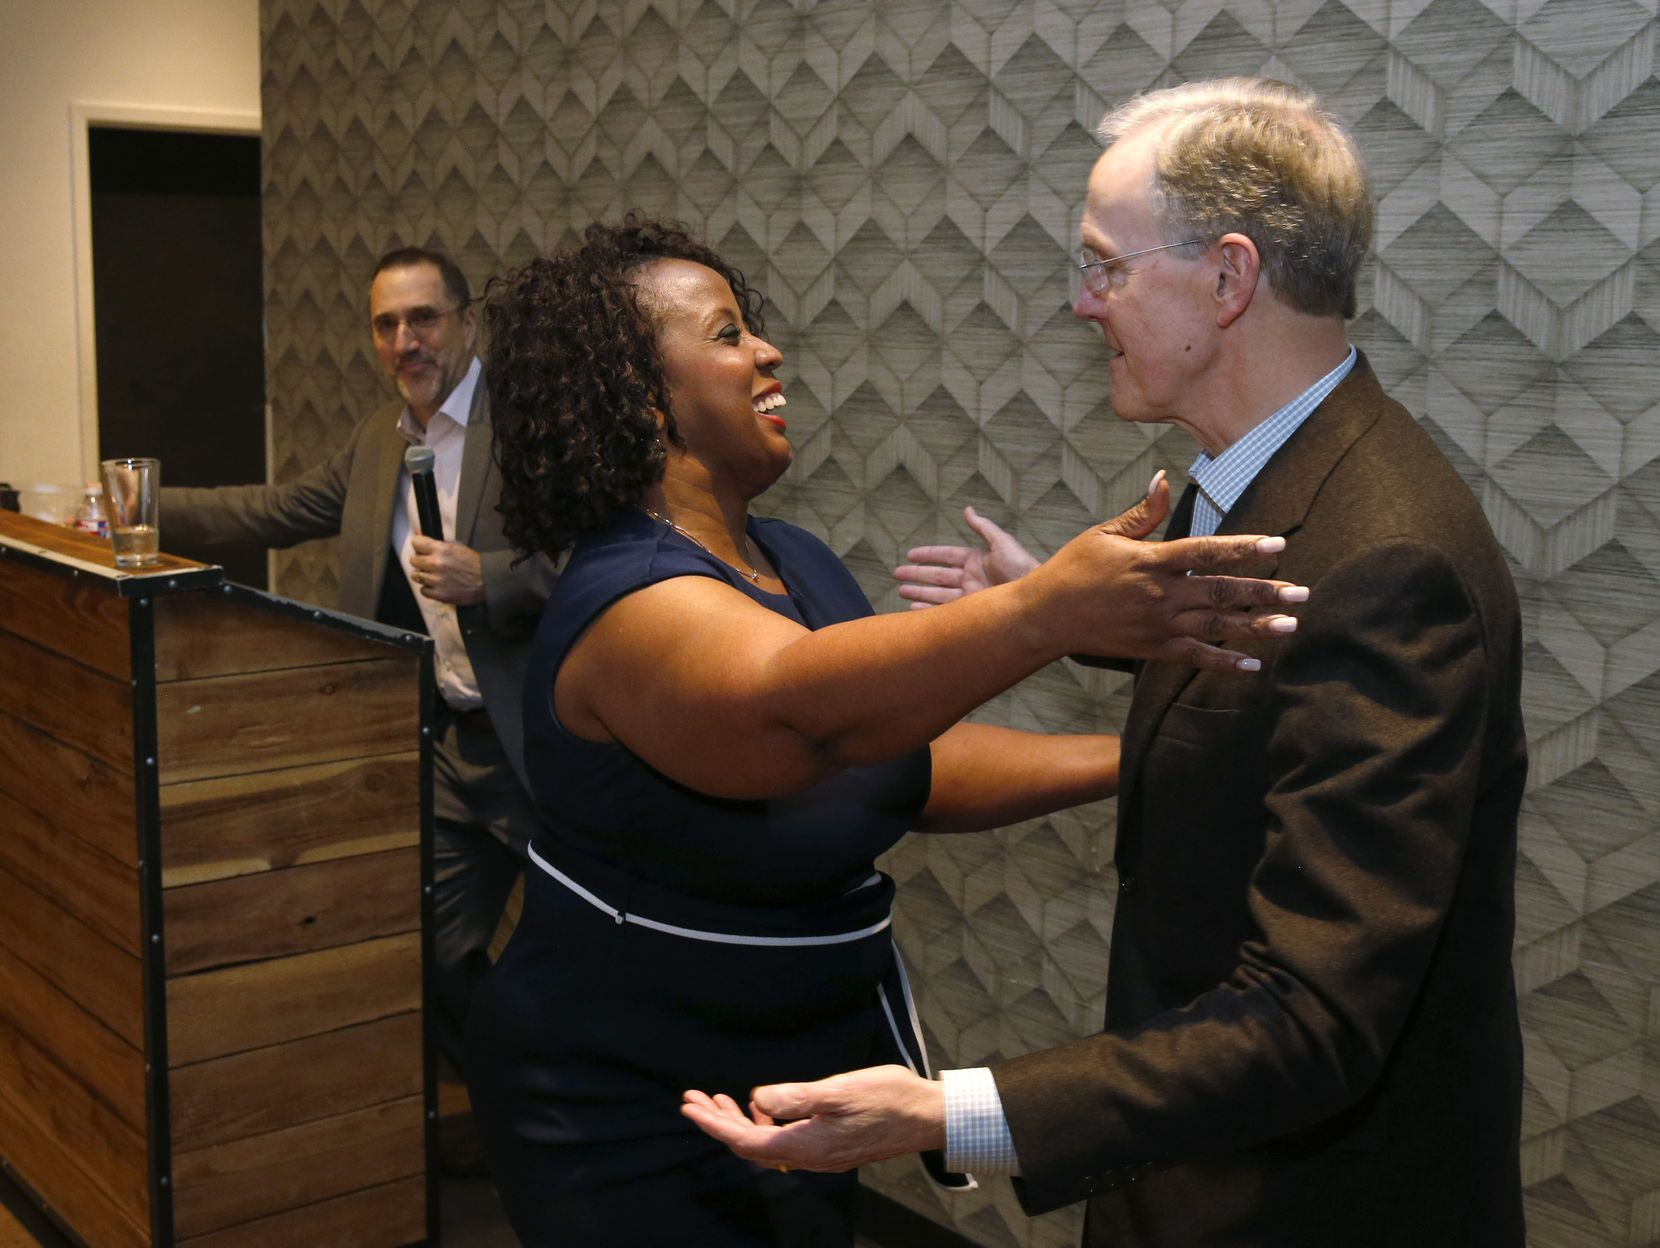 Leona Allen gives a hug to A. H. Belo Corp. CEO Robert Decherd after being announced as this year's winner of a civic journalism award bearing Decherd's name.